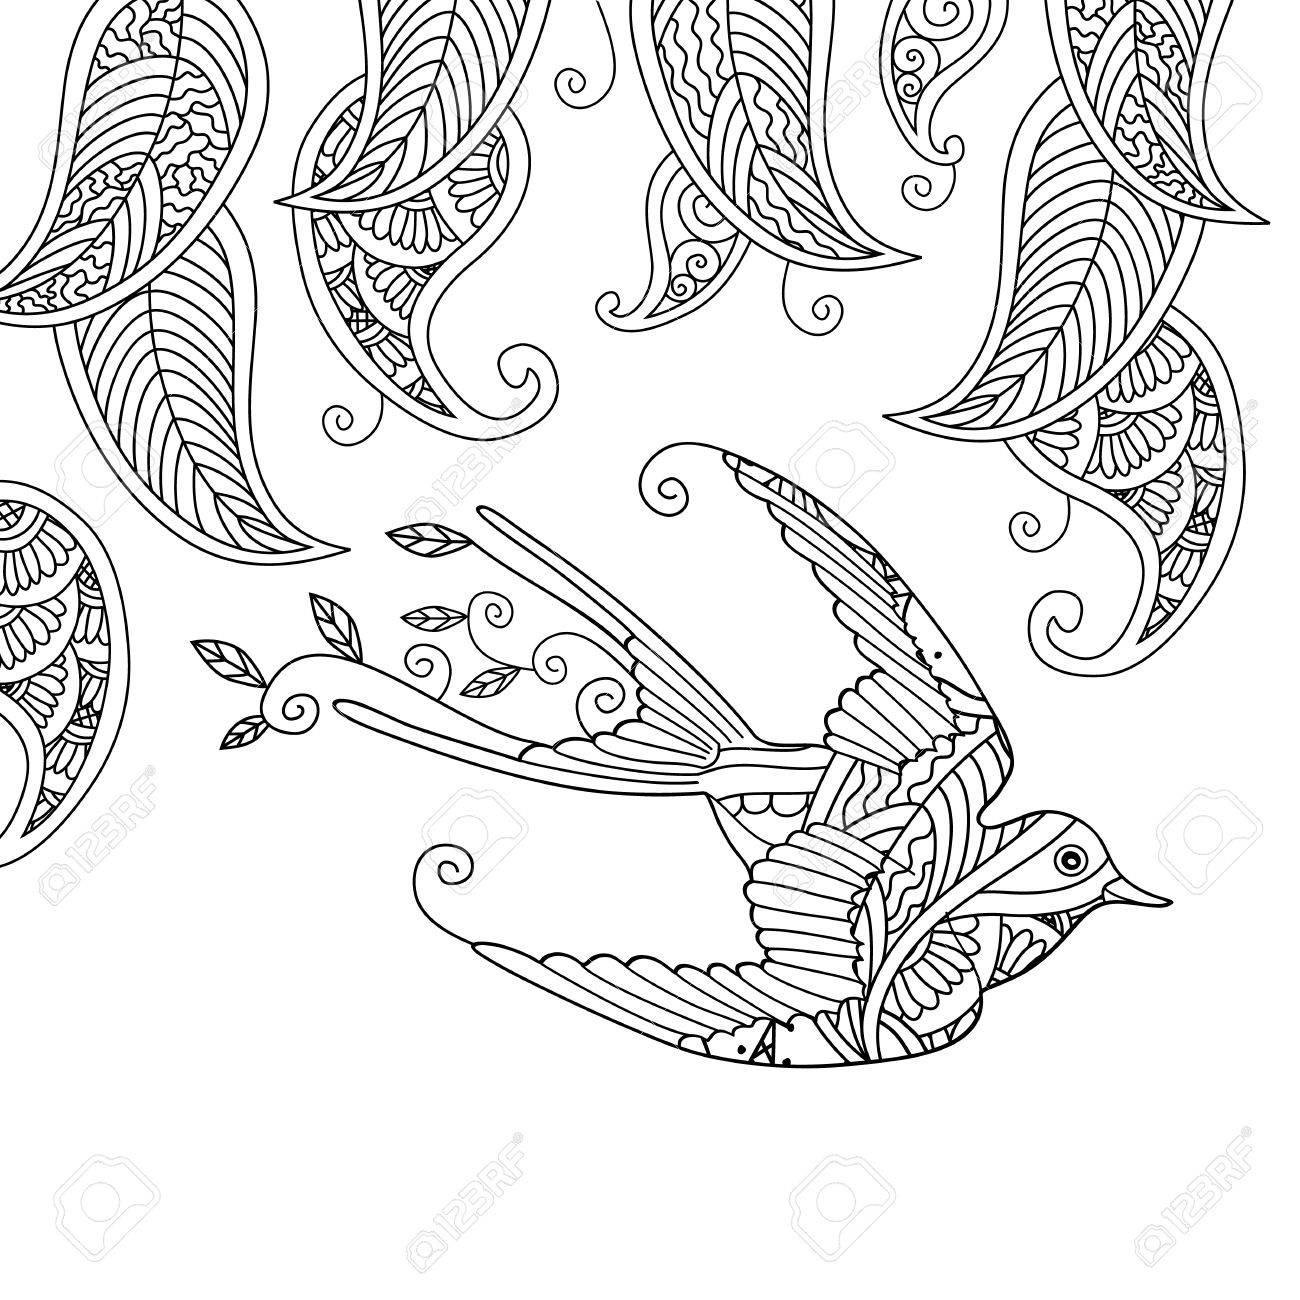 Coloring Page With Beautiful Flying Bird And Willow Leafs Good Quality Book For Adult